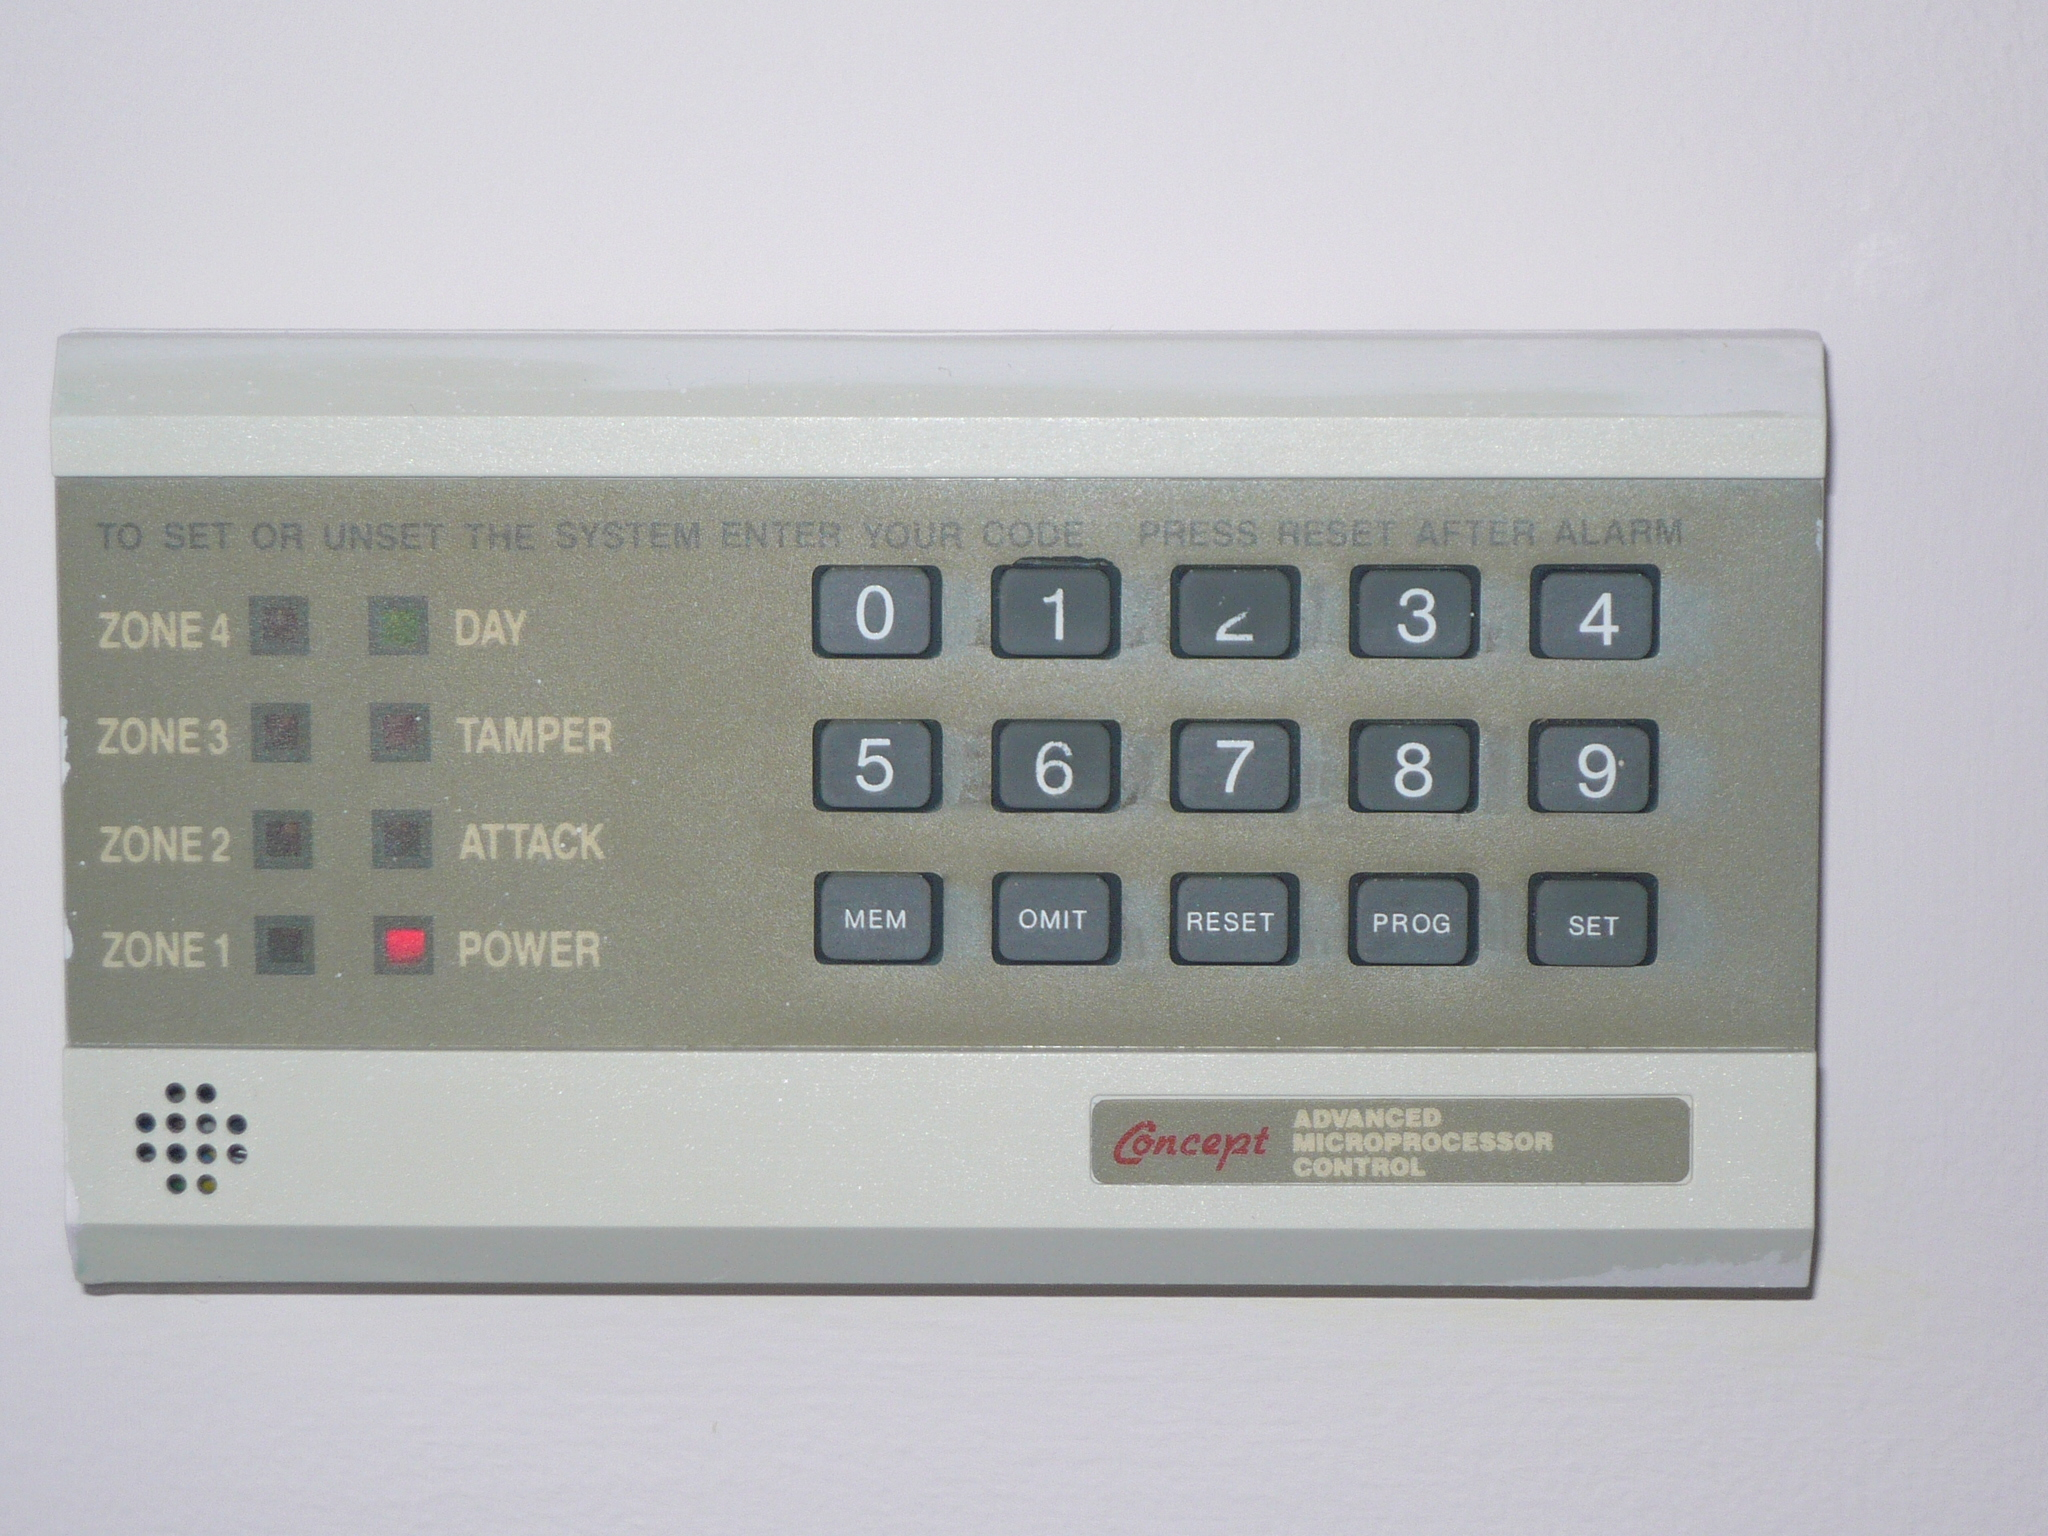 Concept System Control Panels Public Security Installer Community Burglar Alarm Powered By Battery Post 27031 1239201002 Thumb